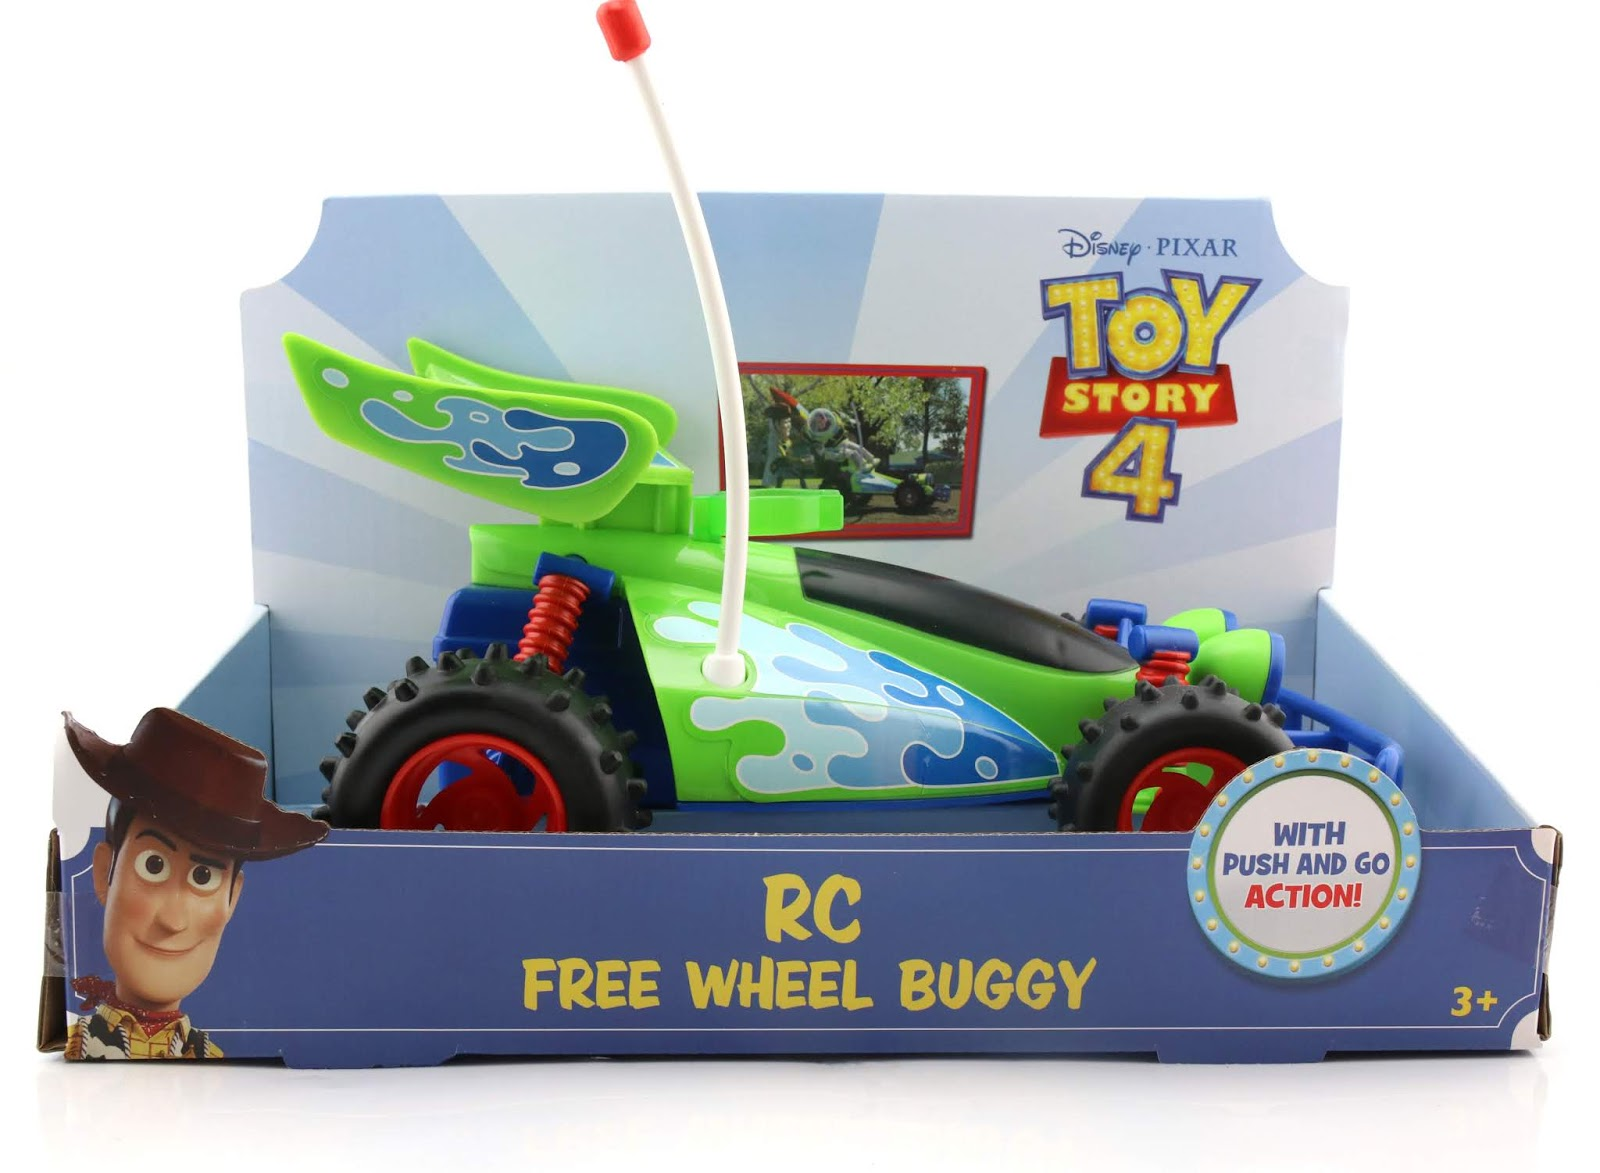 toy story 4 RC figure